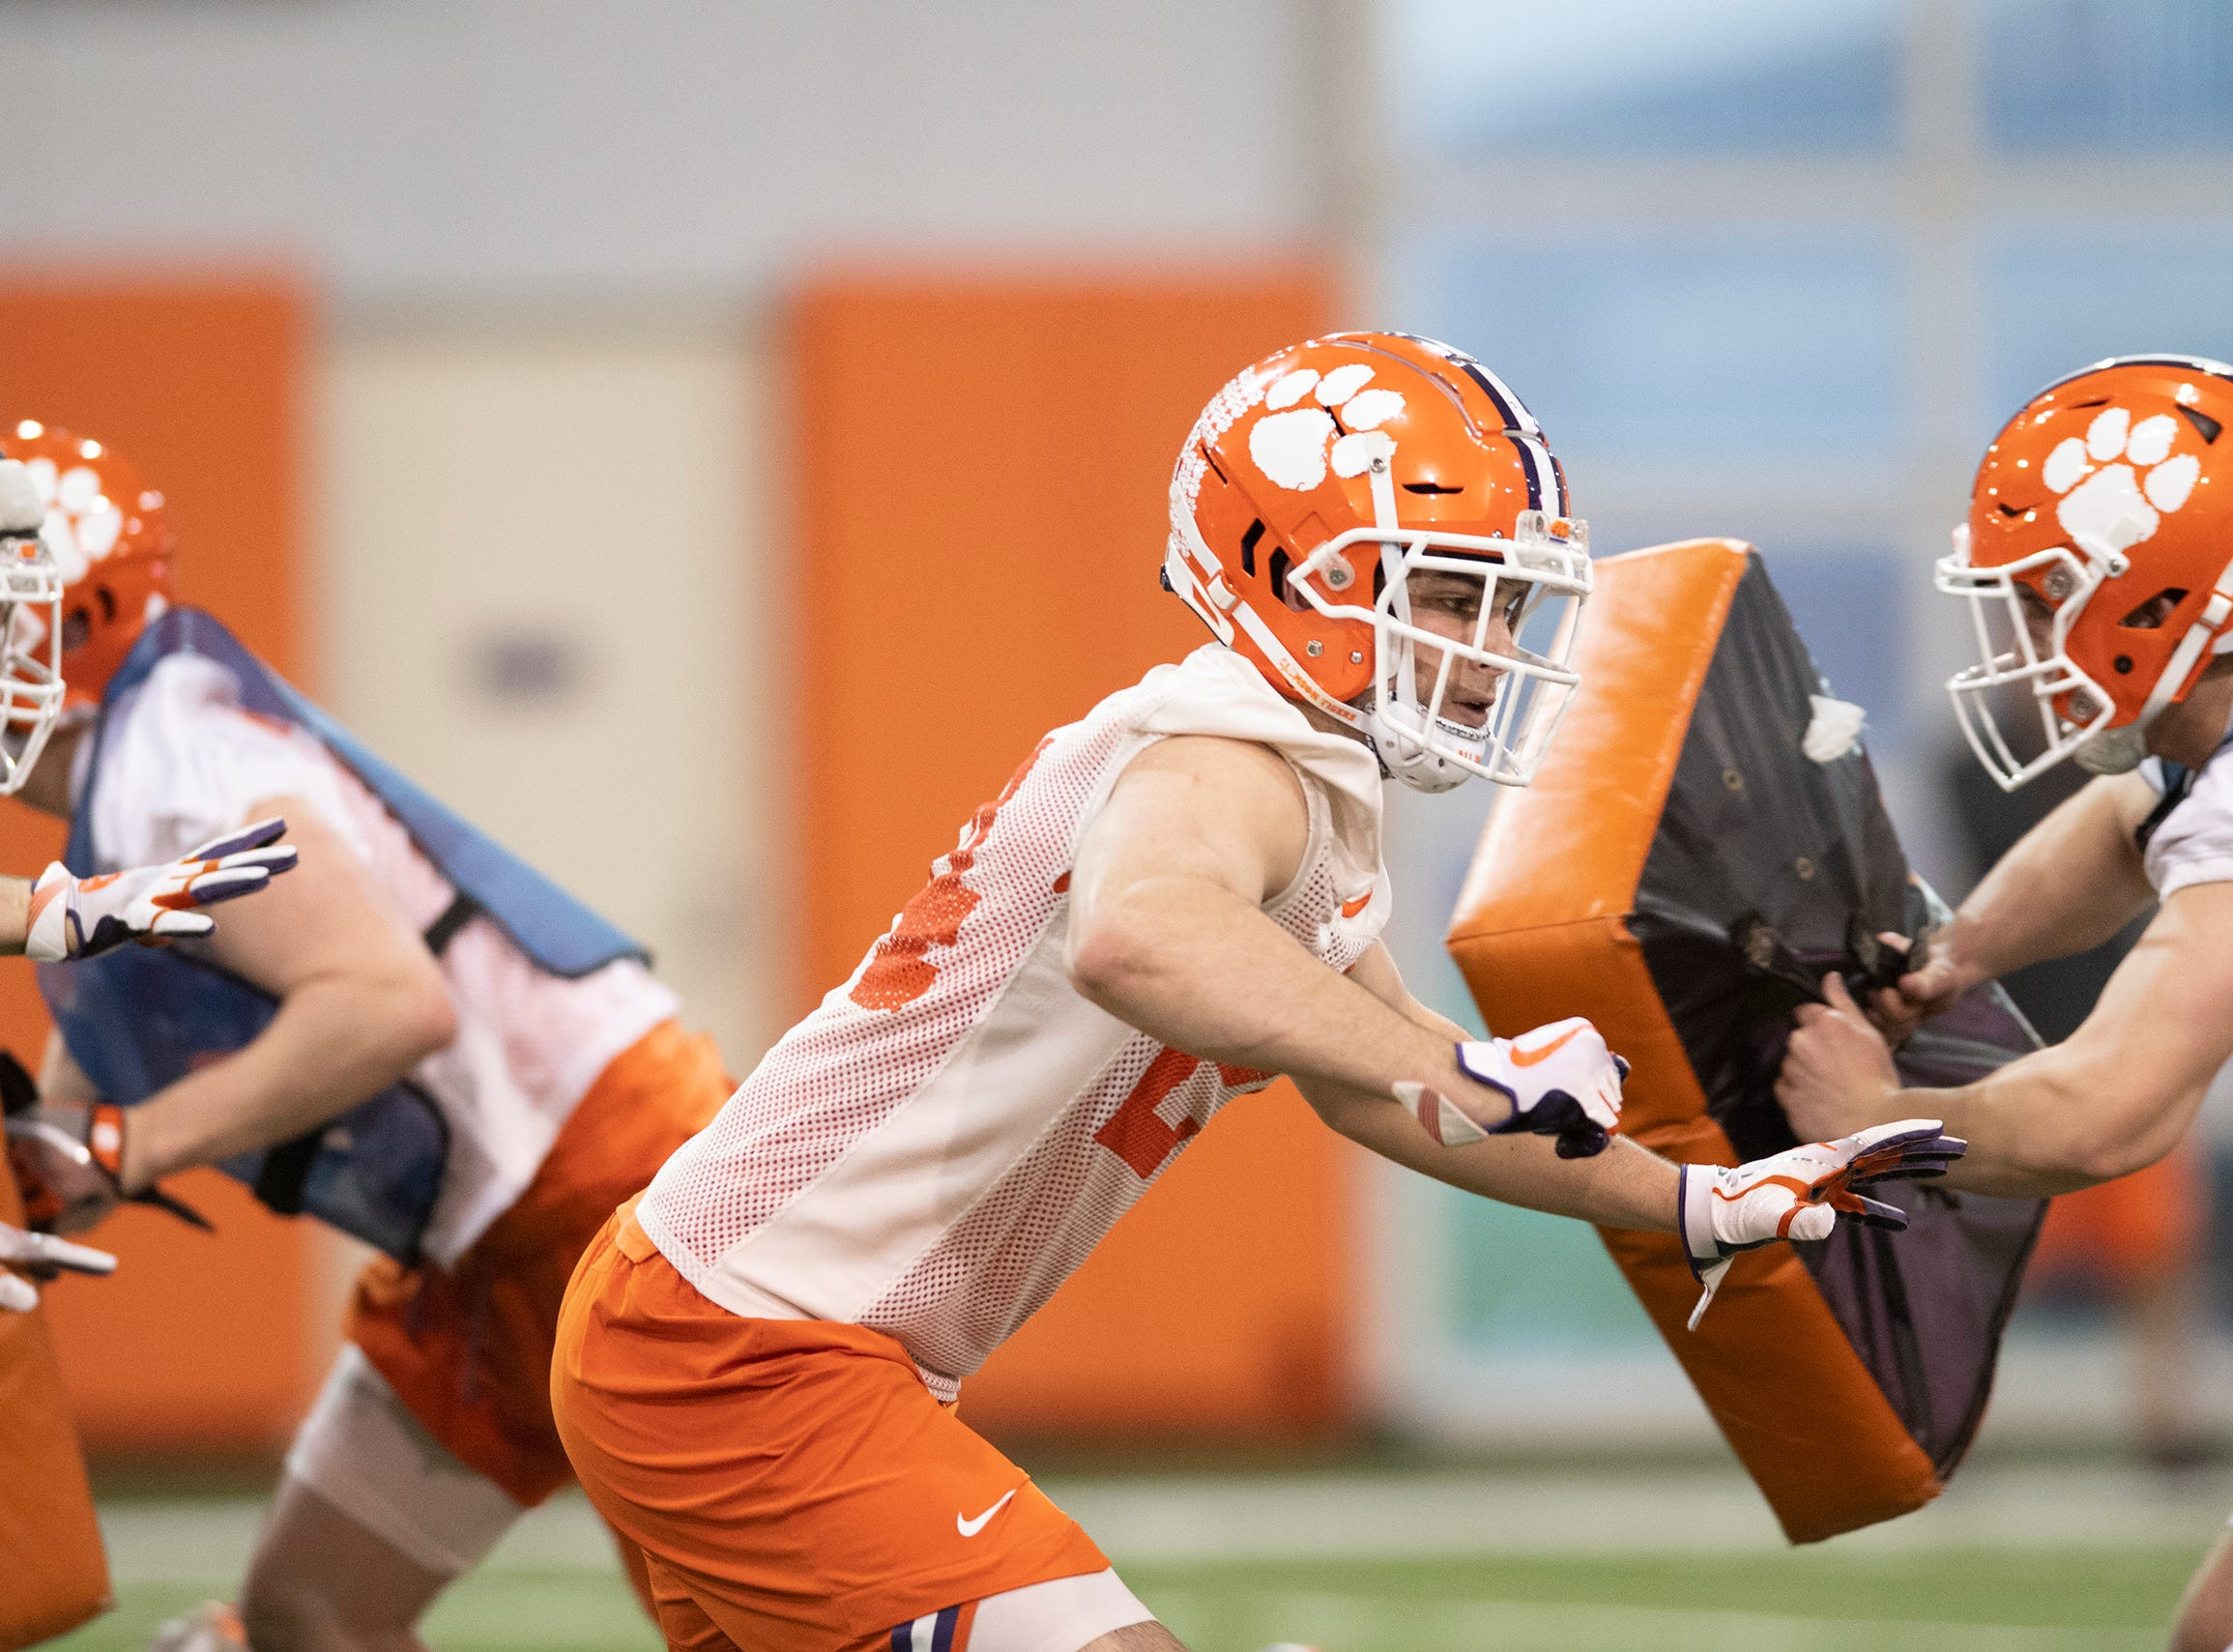 Clemson safety Nolan Turner (24) runs during football practice at the Poe Indoor Football Facility Friday, Mar. 1, 2019.